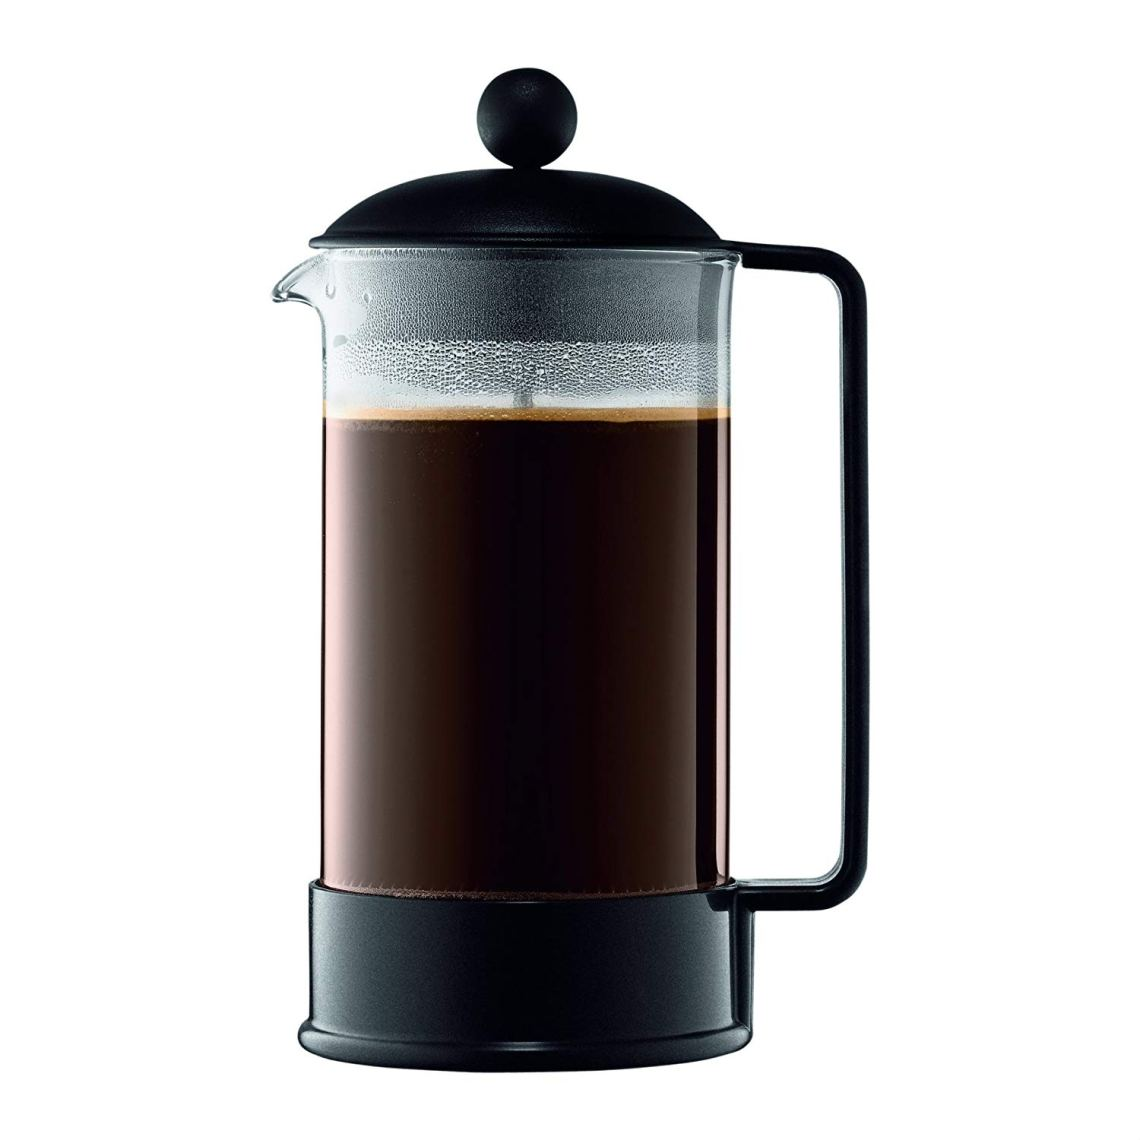 Bodum Brazil French Press Coffee & Tea Maker